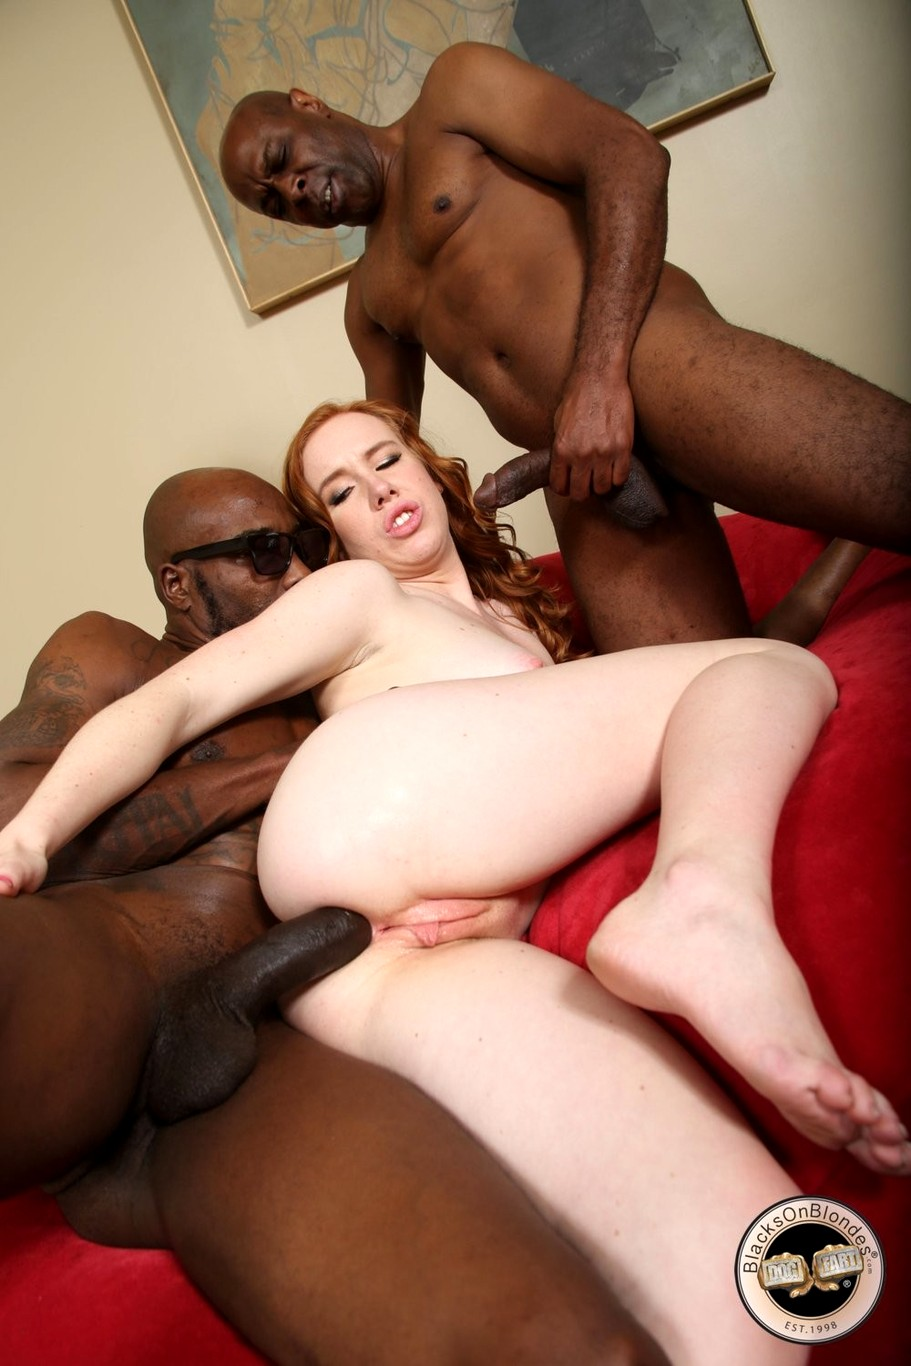 Naked beauties interracial porn video trailers babes